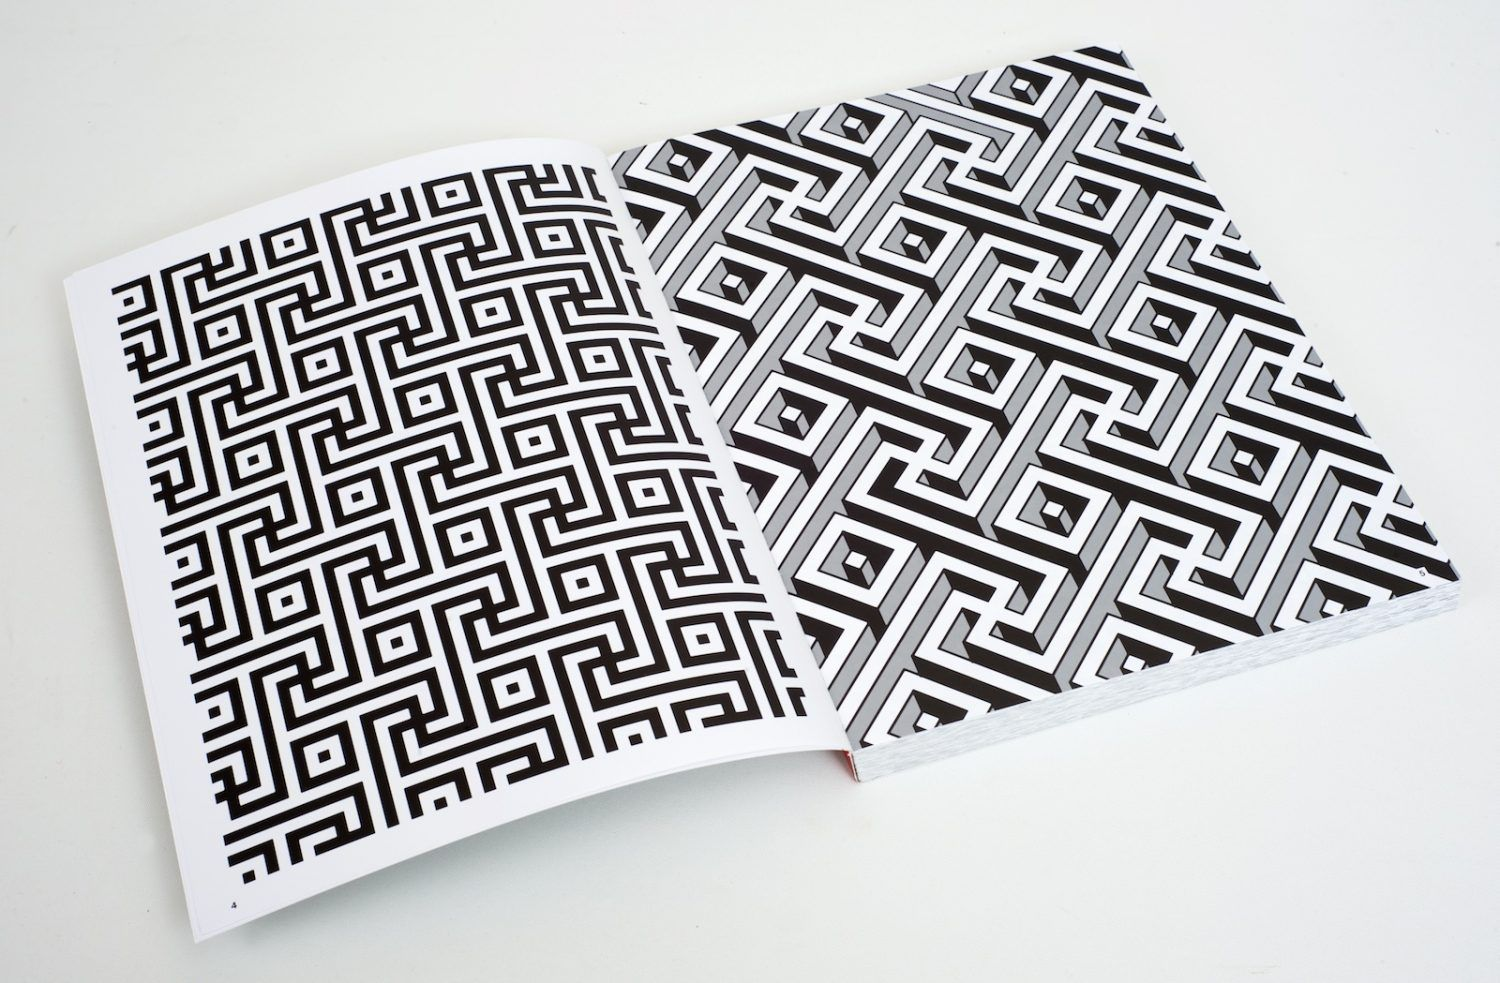 The patterns in this book feature interlocking manji inspired by the  classic sayagata, a pattern found commonly within Indian architecture, ...